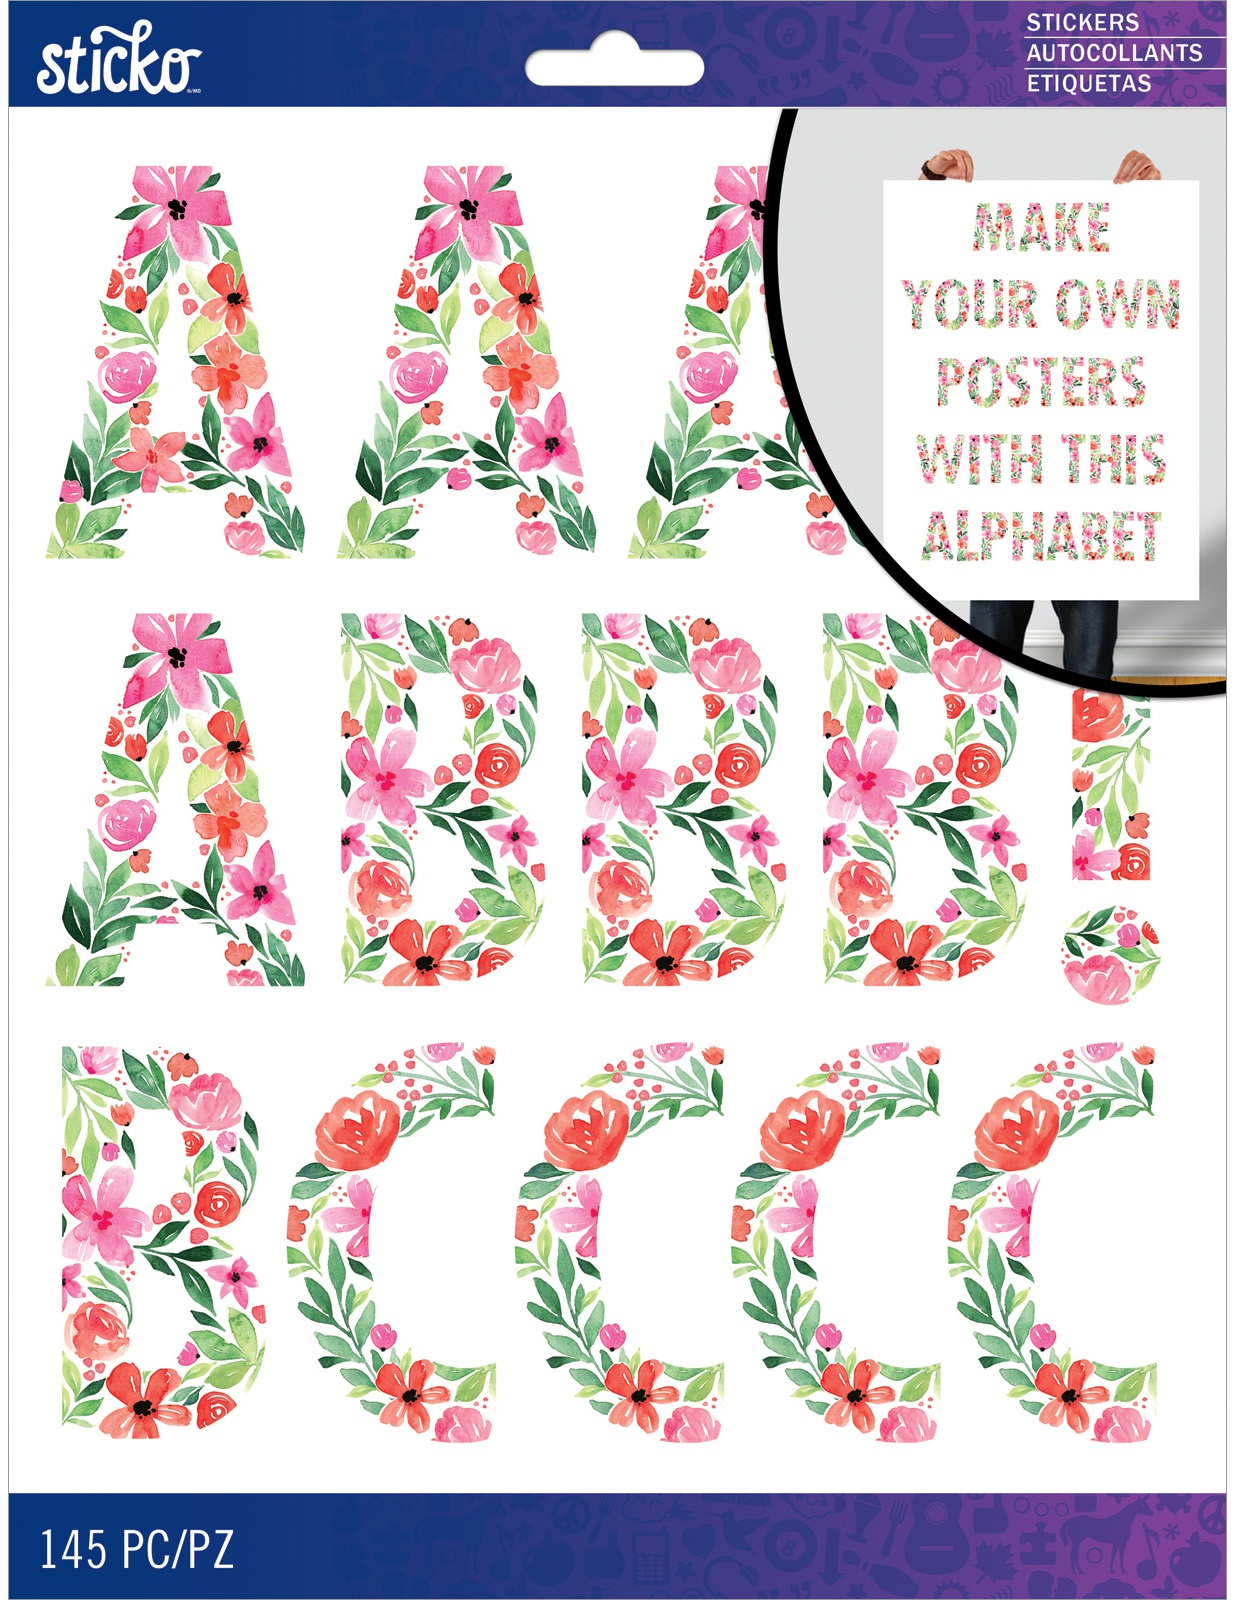 Sticko XL Alphabet Stickers-Painted Floral Futura